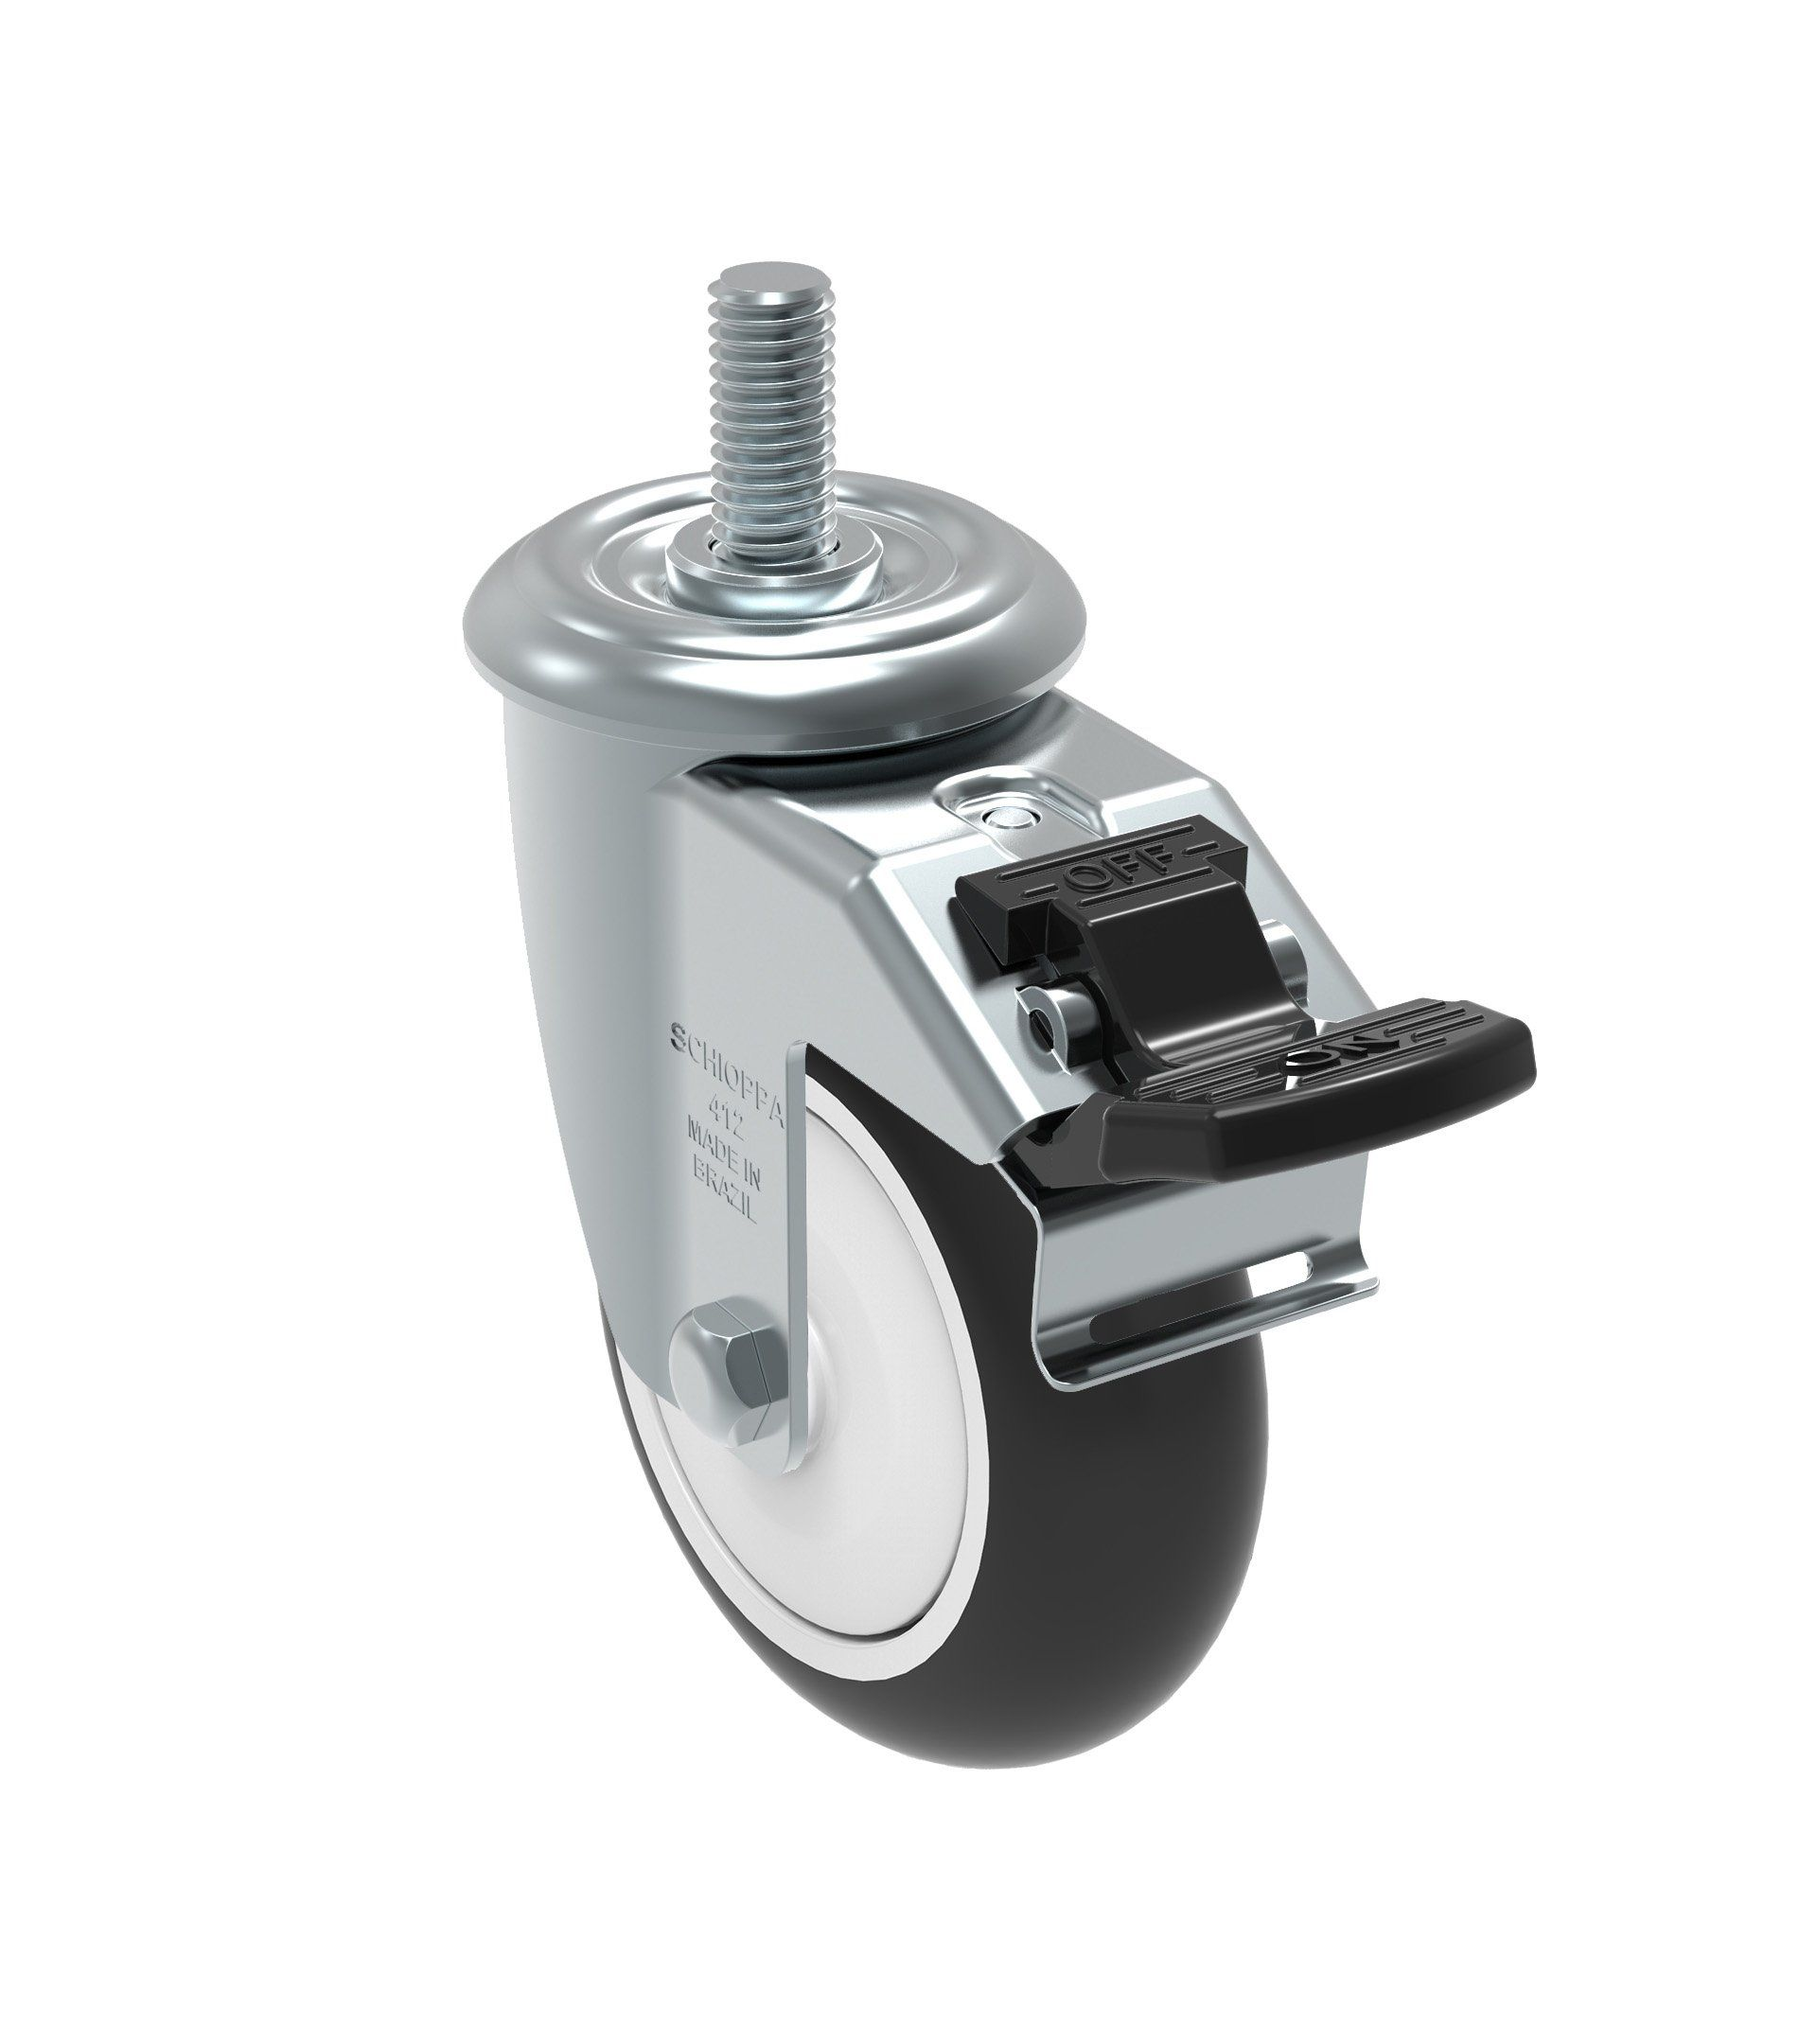 Schioppa Gleef 412 Npe G L12 Series 4 X 1 1 4 Diameter Swivel Caster With Total Lock Brake Non Marking Polypropylene Pre Swivel Casters Caster Swivel Wheels